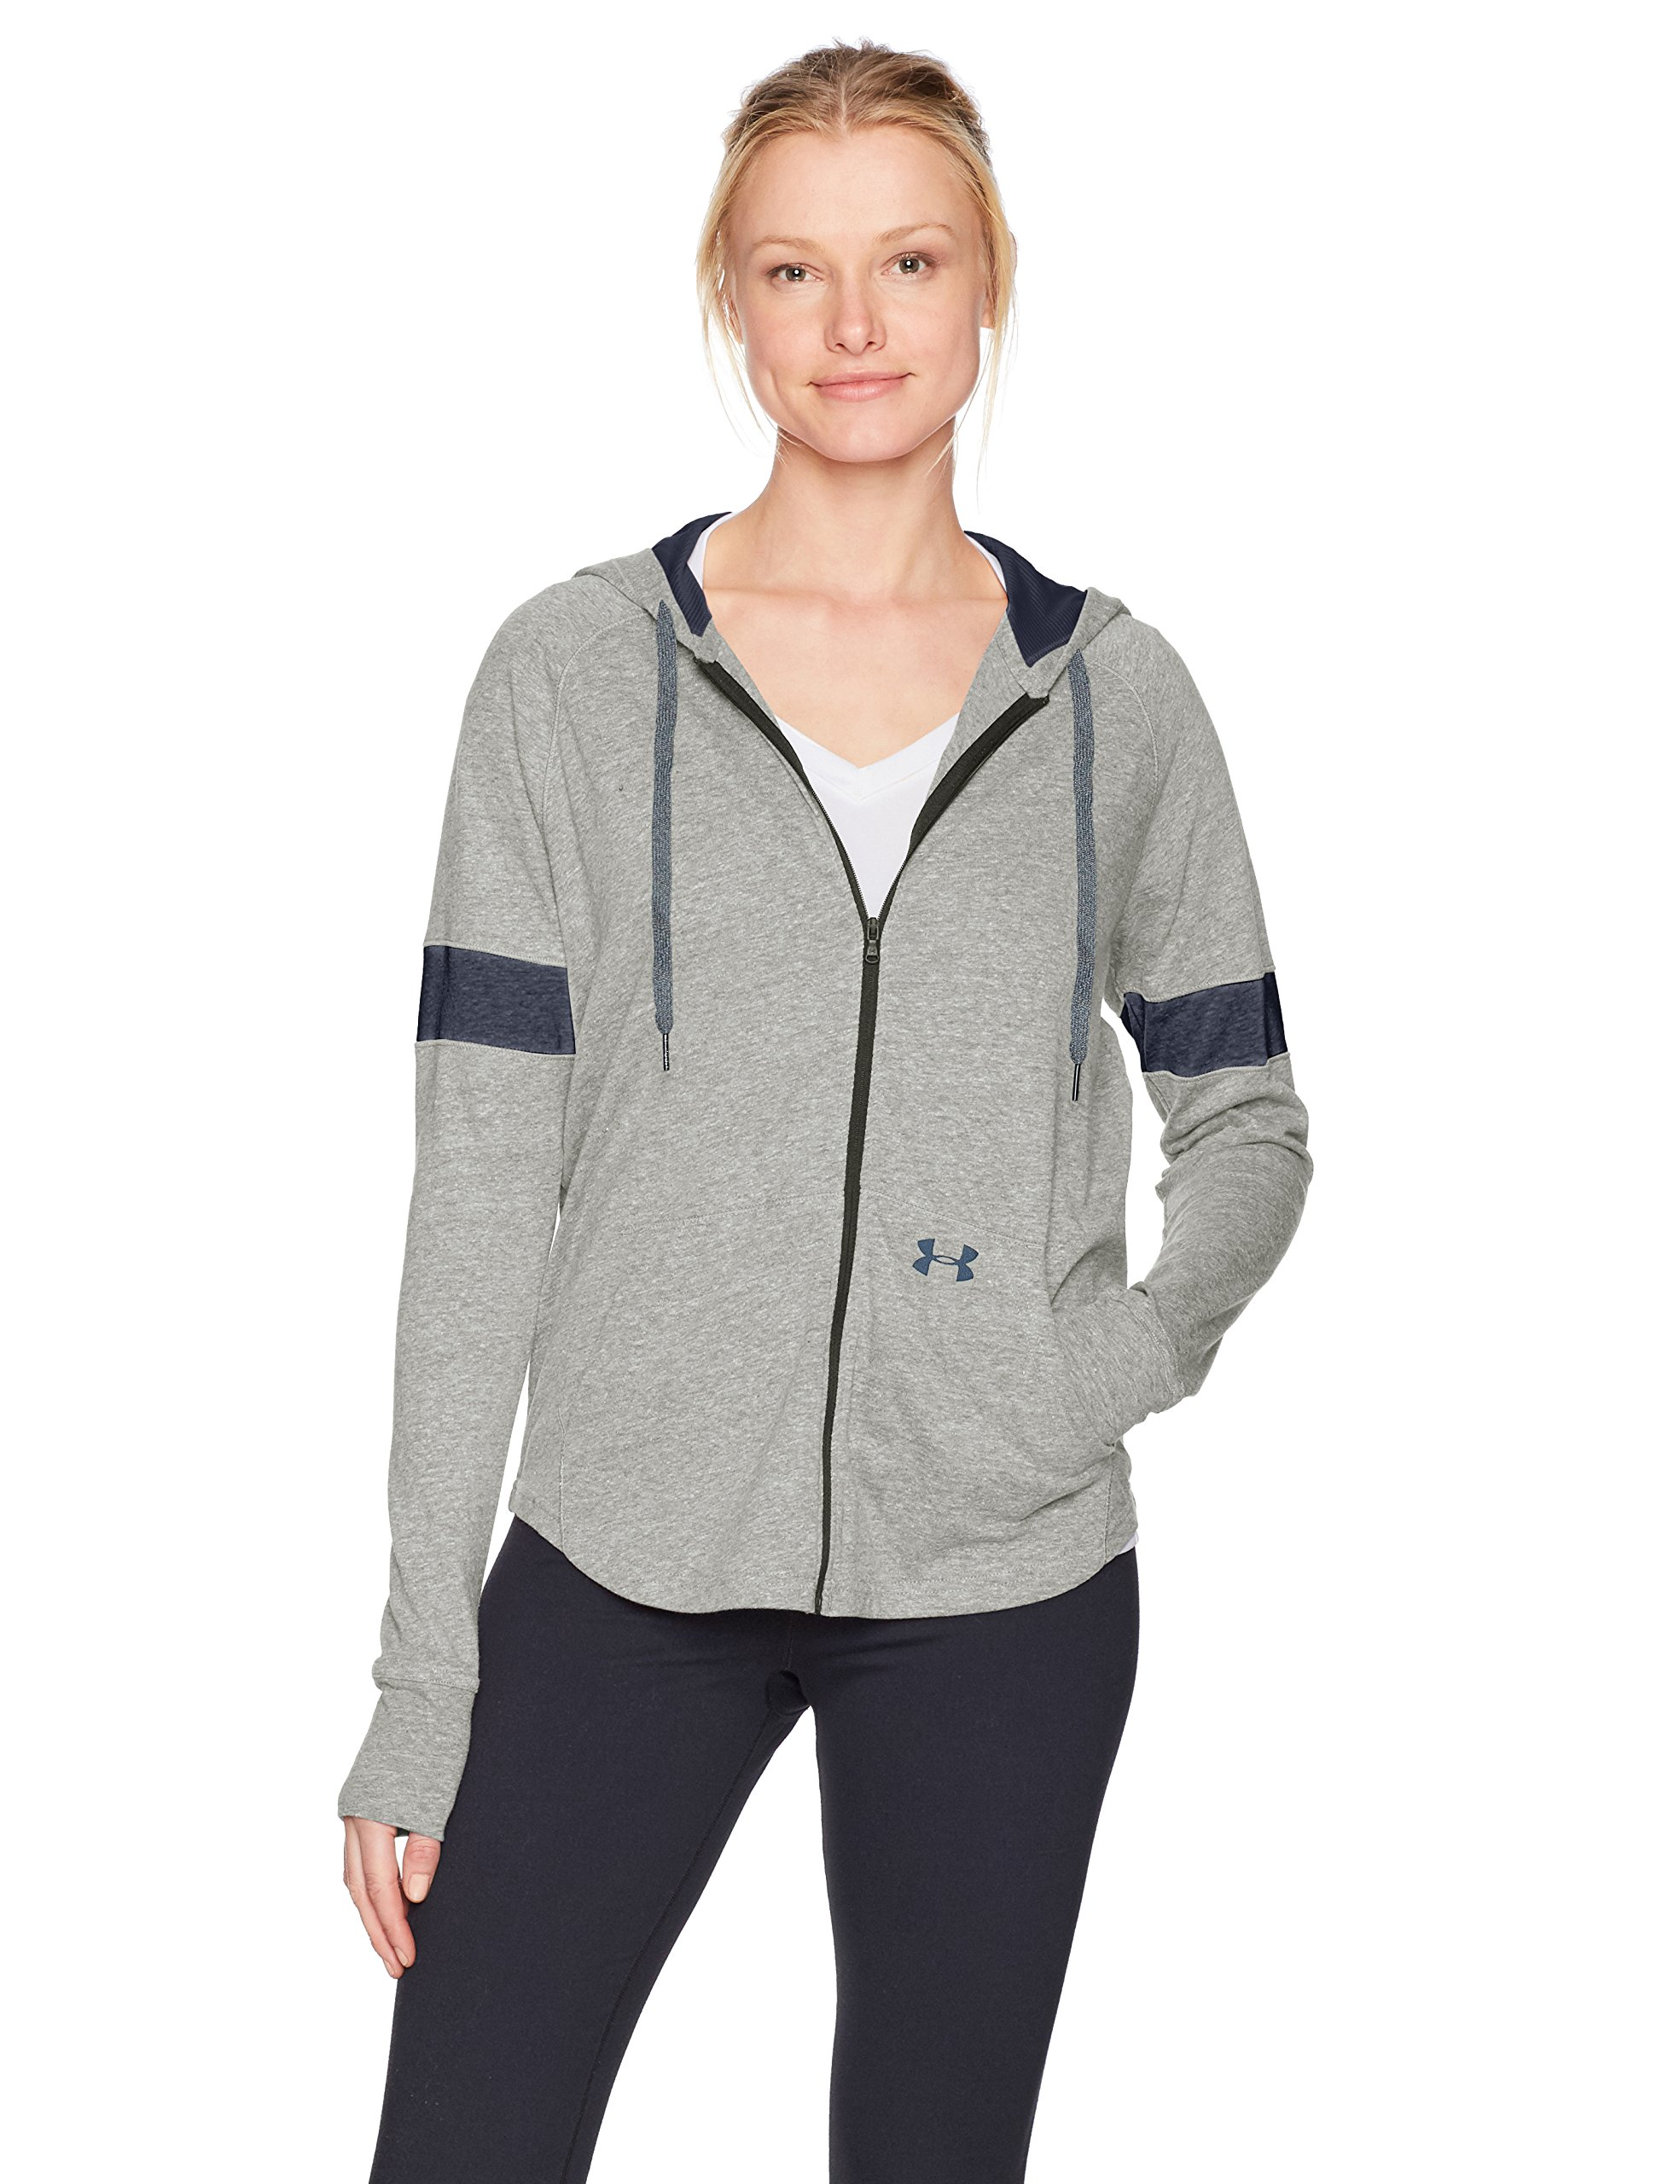 Under Armour Women's Sportstyle Full Zip Hoodie, Charcoal (019)/Midnight Navy, X-Large by Under Armour